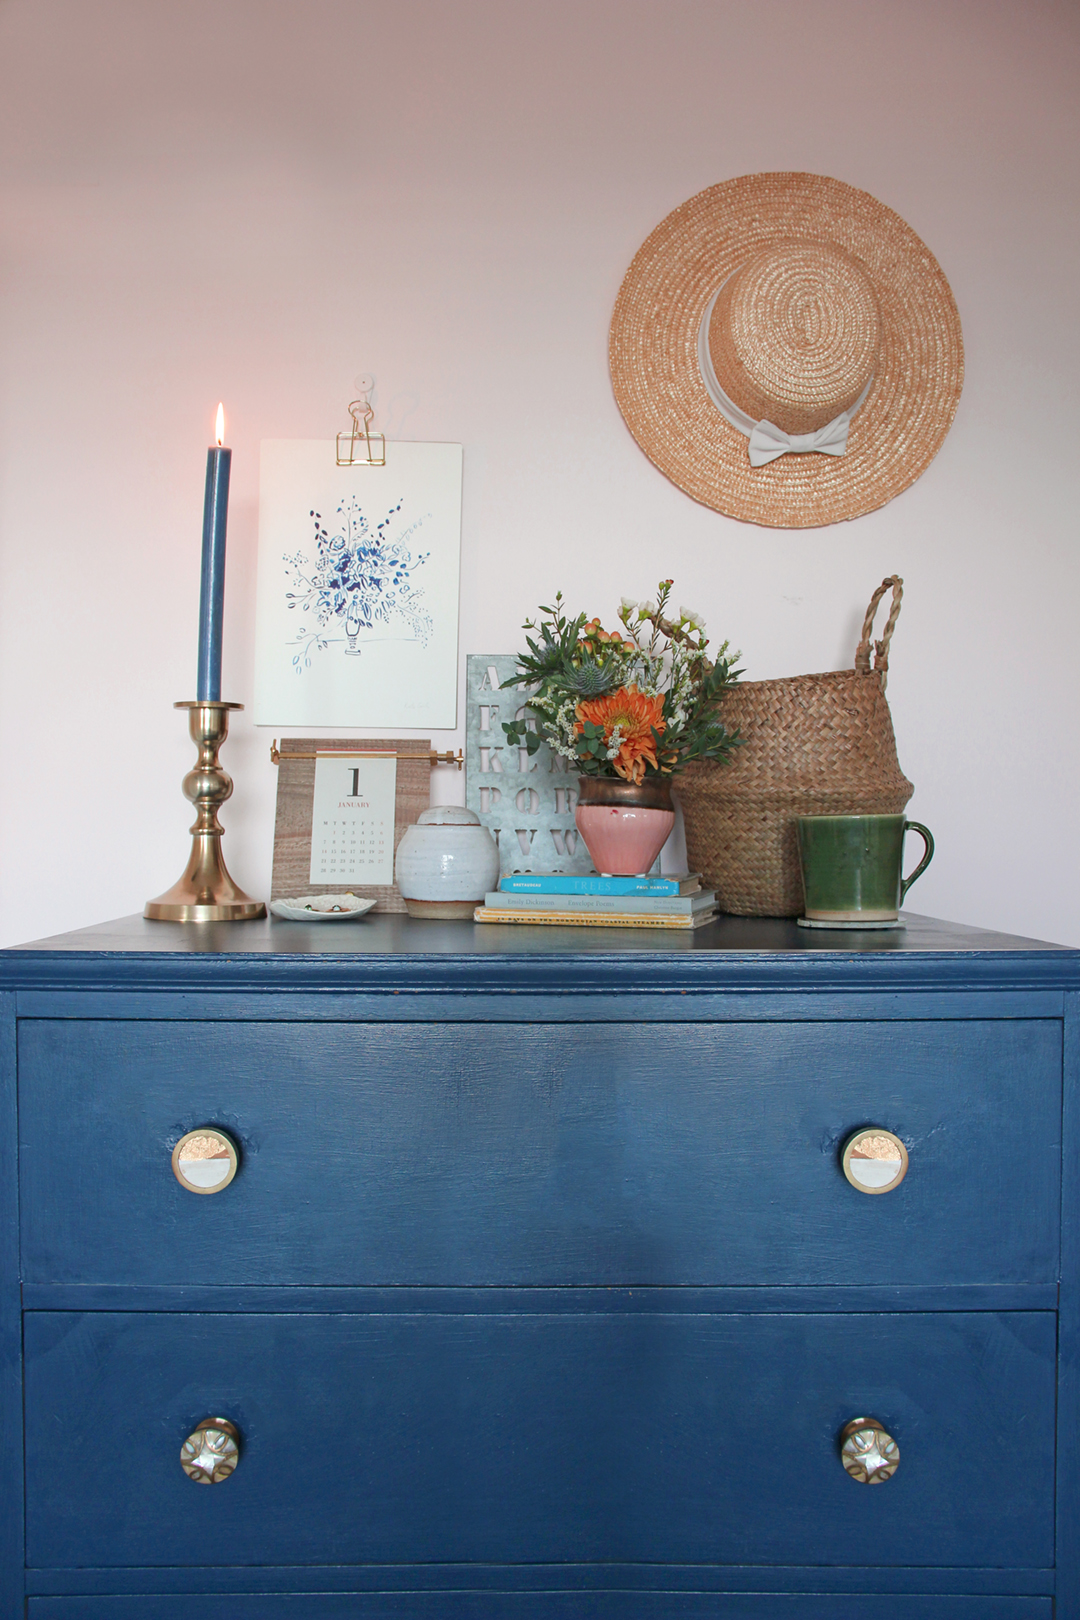 Nancy-Straughan-Interior-Stylist-Blog-Natural-Pretty-Bedroom-Style-Blue-Pink.jpg